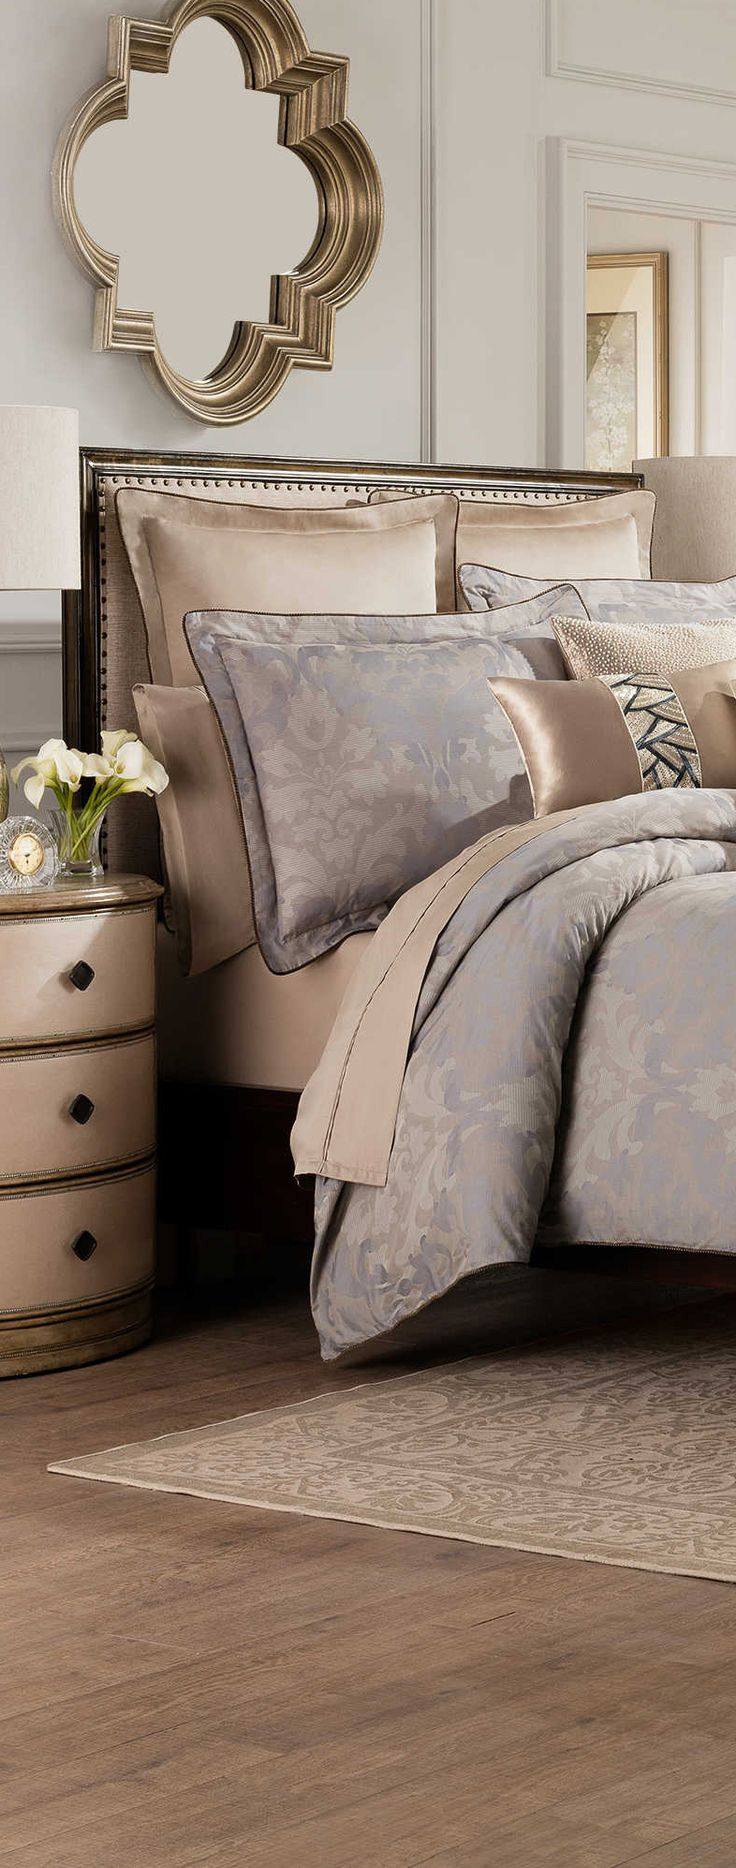 510 Best Images About Luxury Bedding Sets On Pinterest Pine Cone Hill Luxury Bedding And